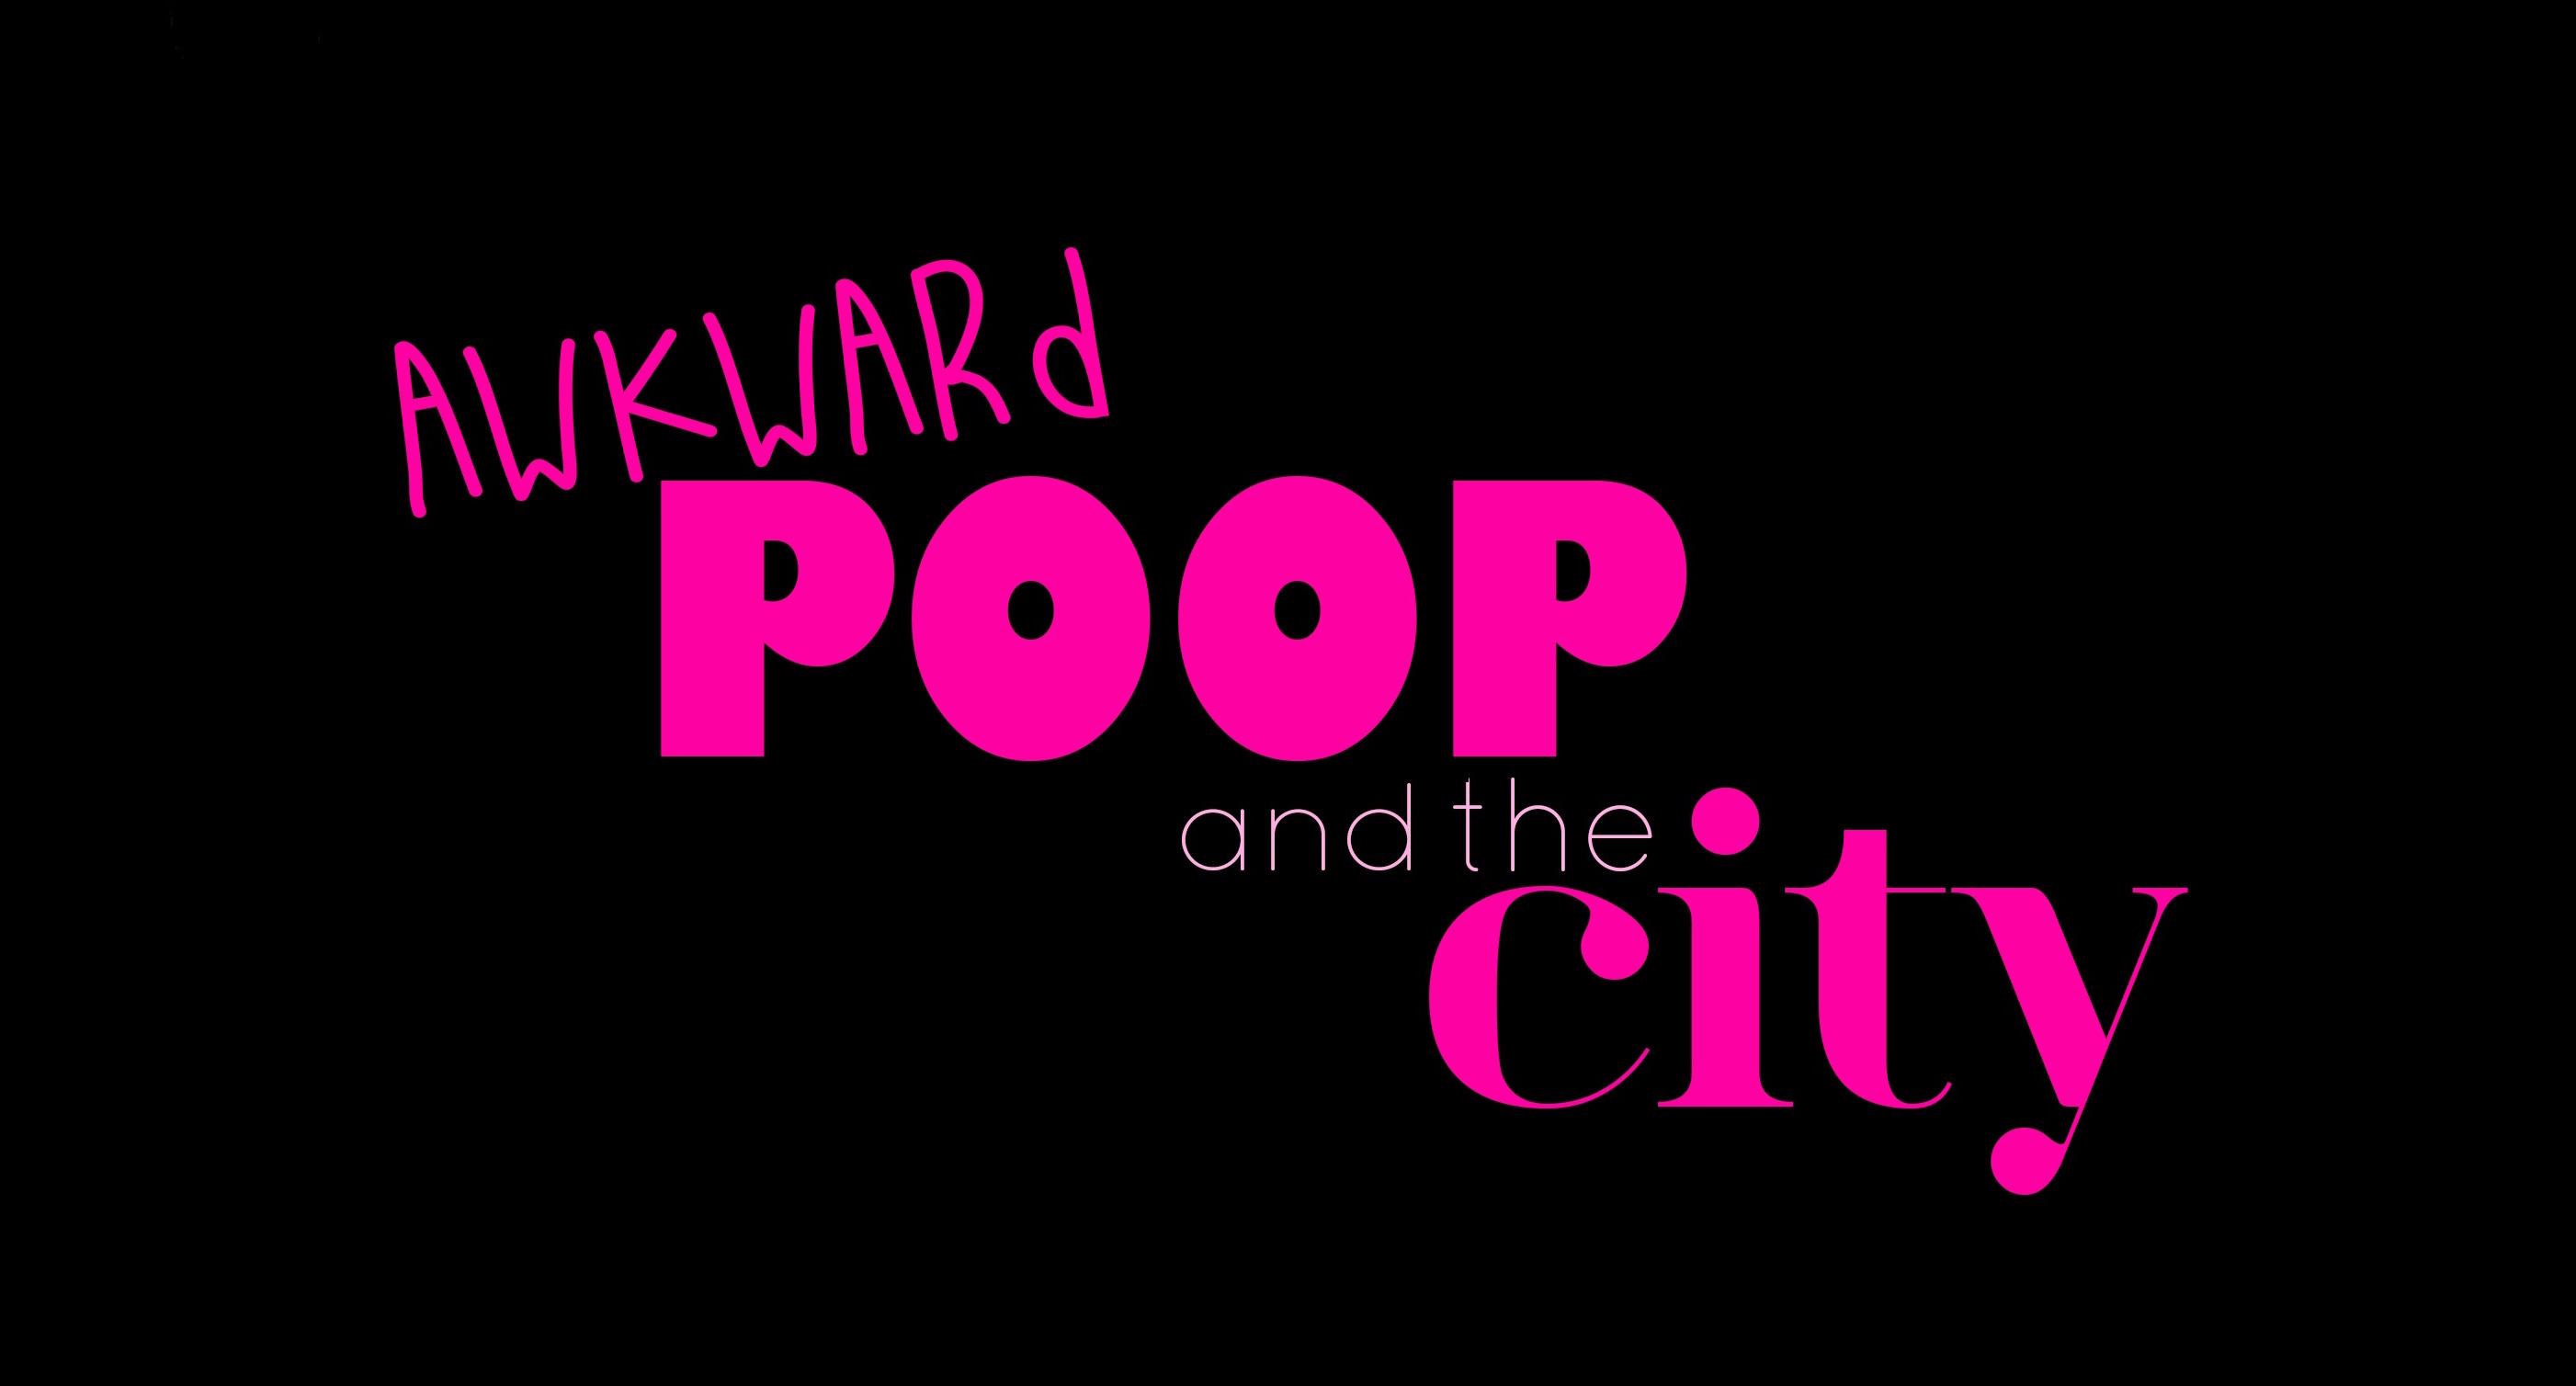 Awkward Poop and the City